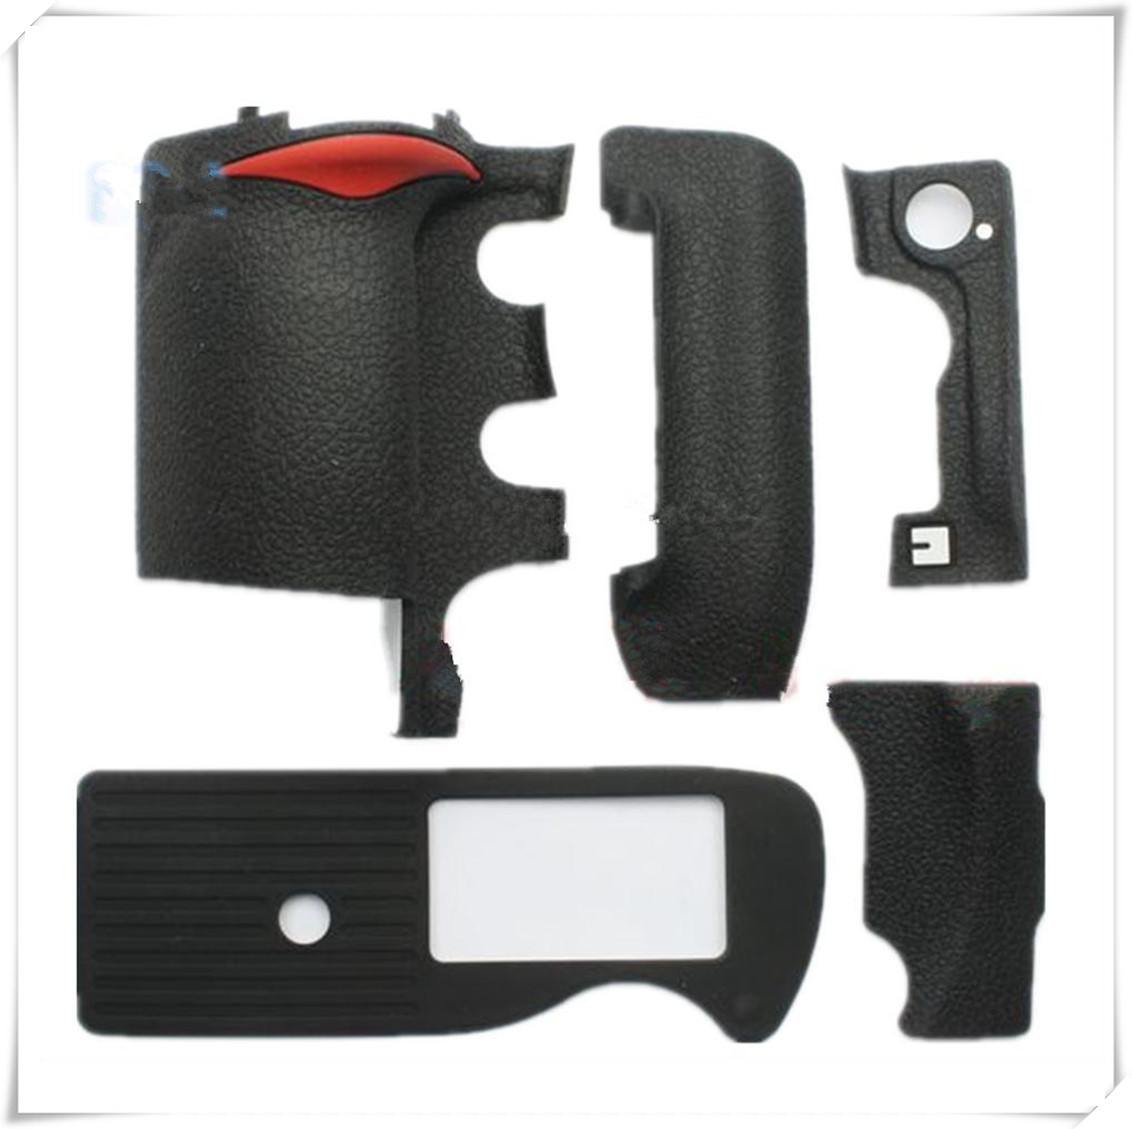 A Set of 5 Pieces New Grip +left side +thumb +bottom +card cover Rubber For Nikon D3 D3s D3x SLR Camera+ 3M Tape a set of 4 pieces new original grip left side thumb bottom rubber repair parts for nikon d3 d3s d3x slr camera 3m tape